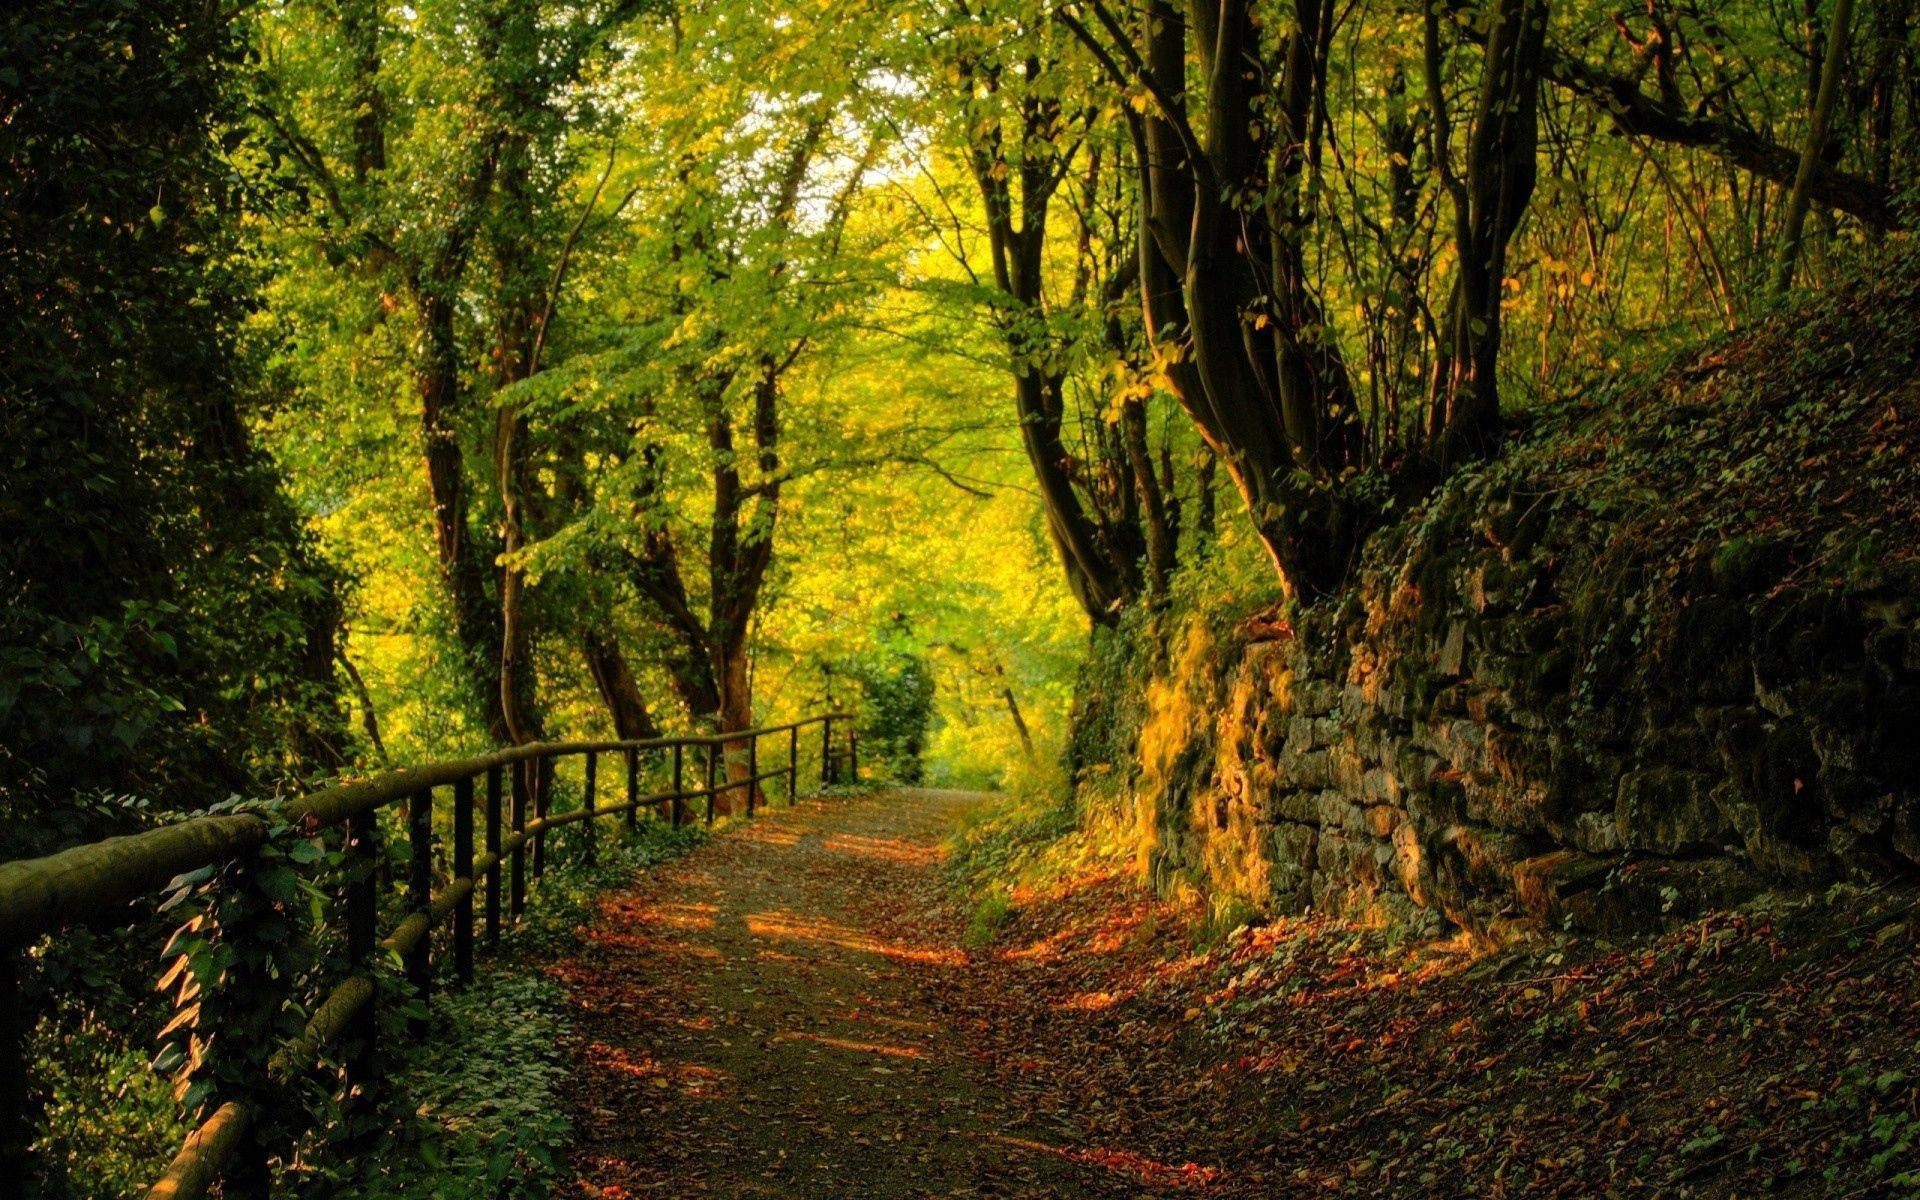 99751 download wallpaper Nature, Trees, Stones, Autumn, Leaves, Forest, Path, Trail screensavers and pictures for free